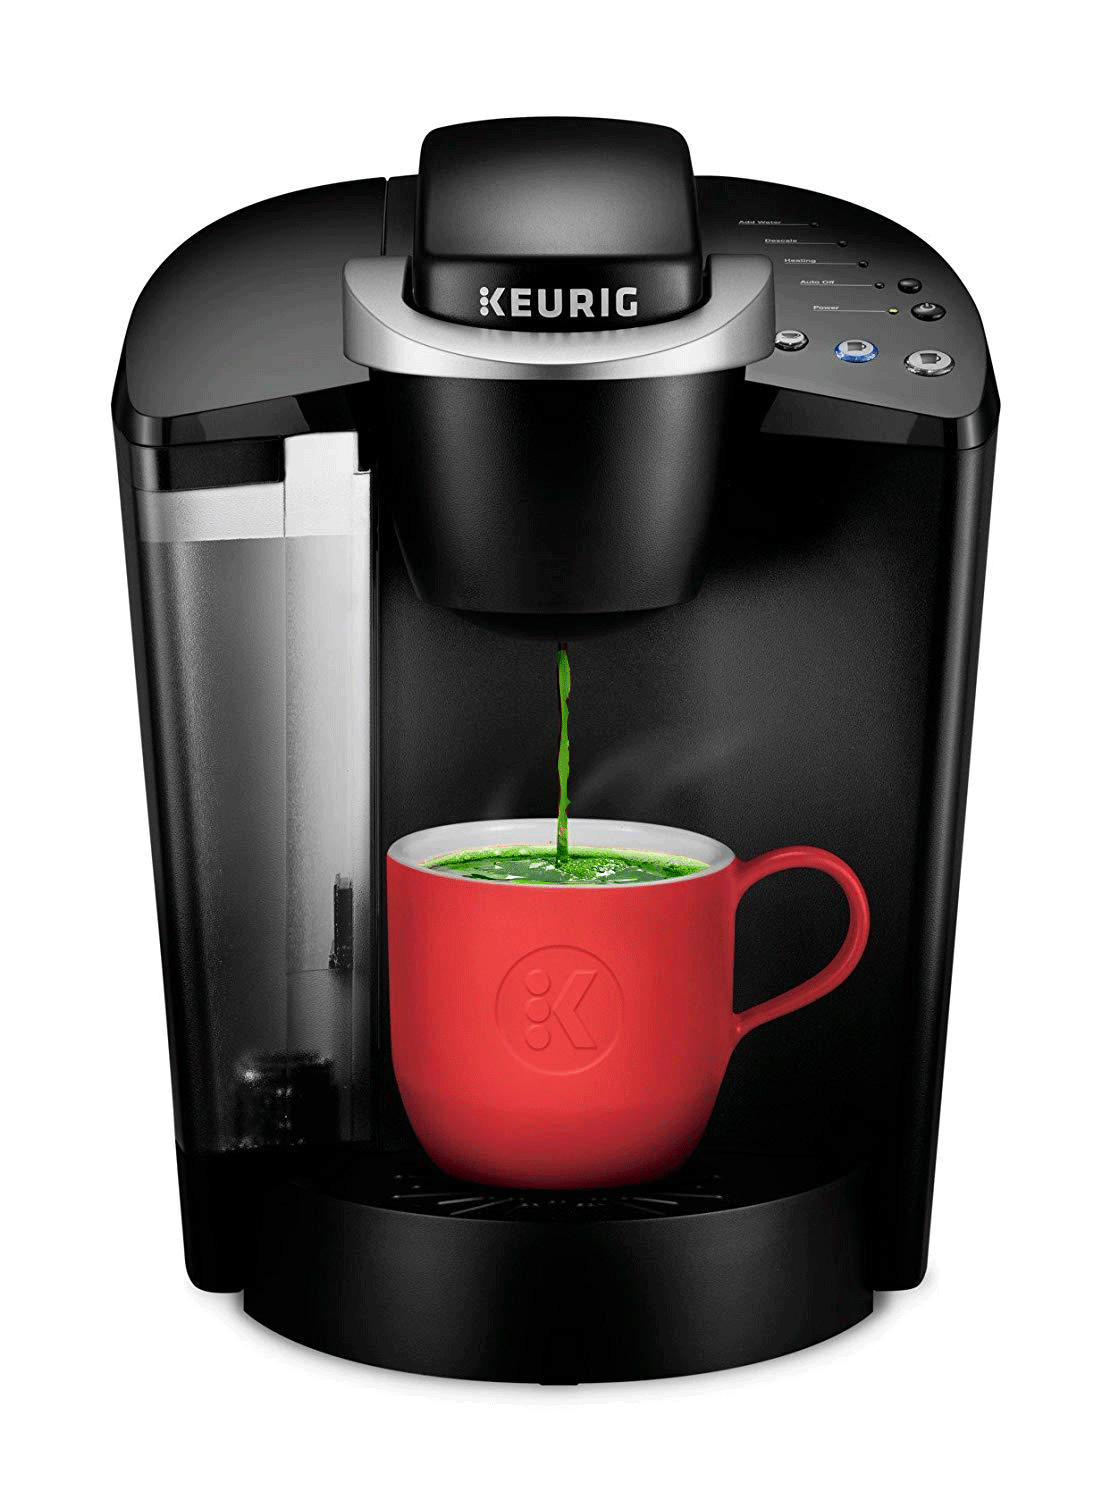 you can use the Keurig to brew tasty green tea